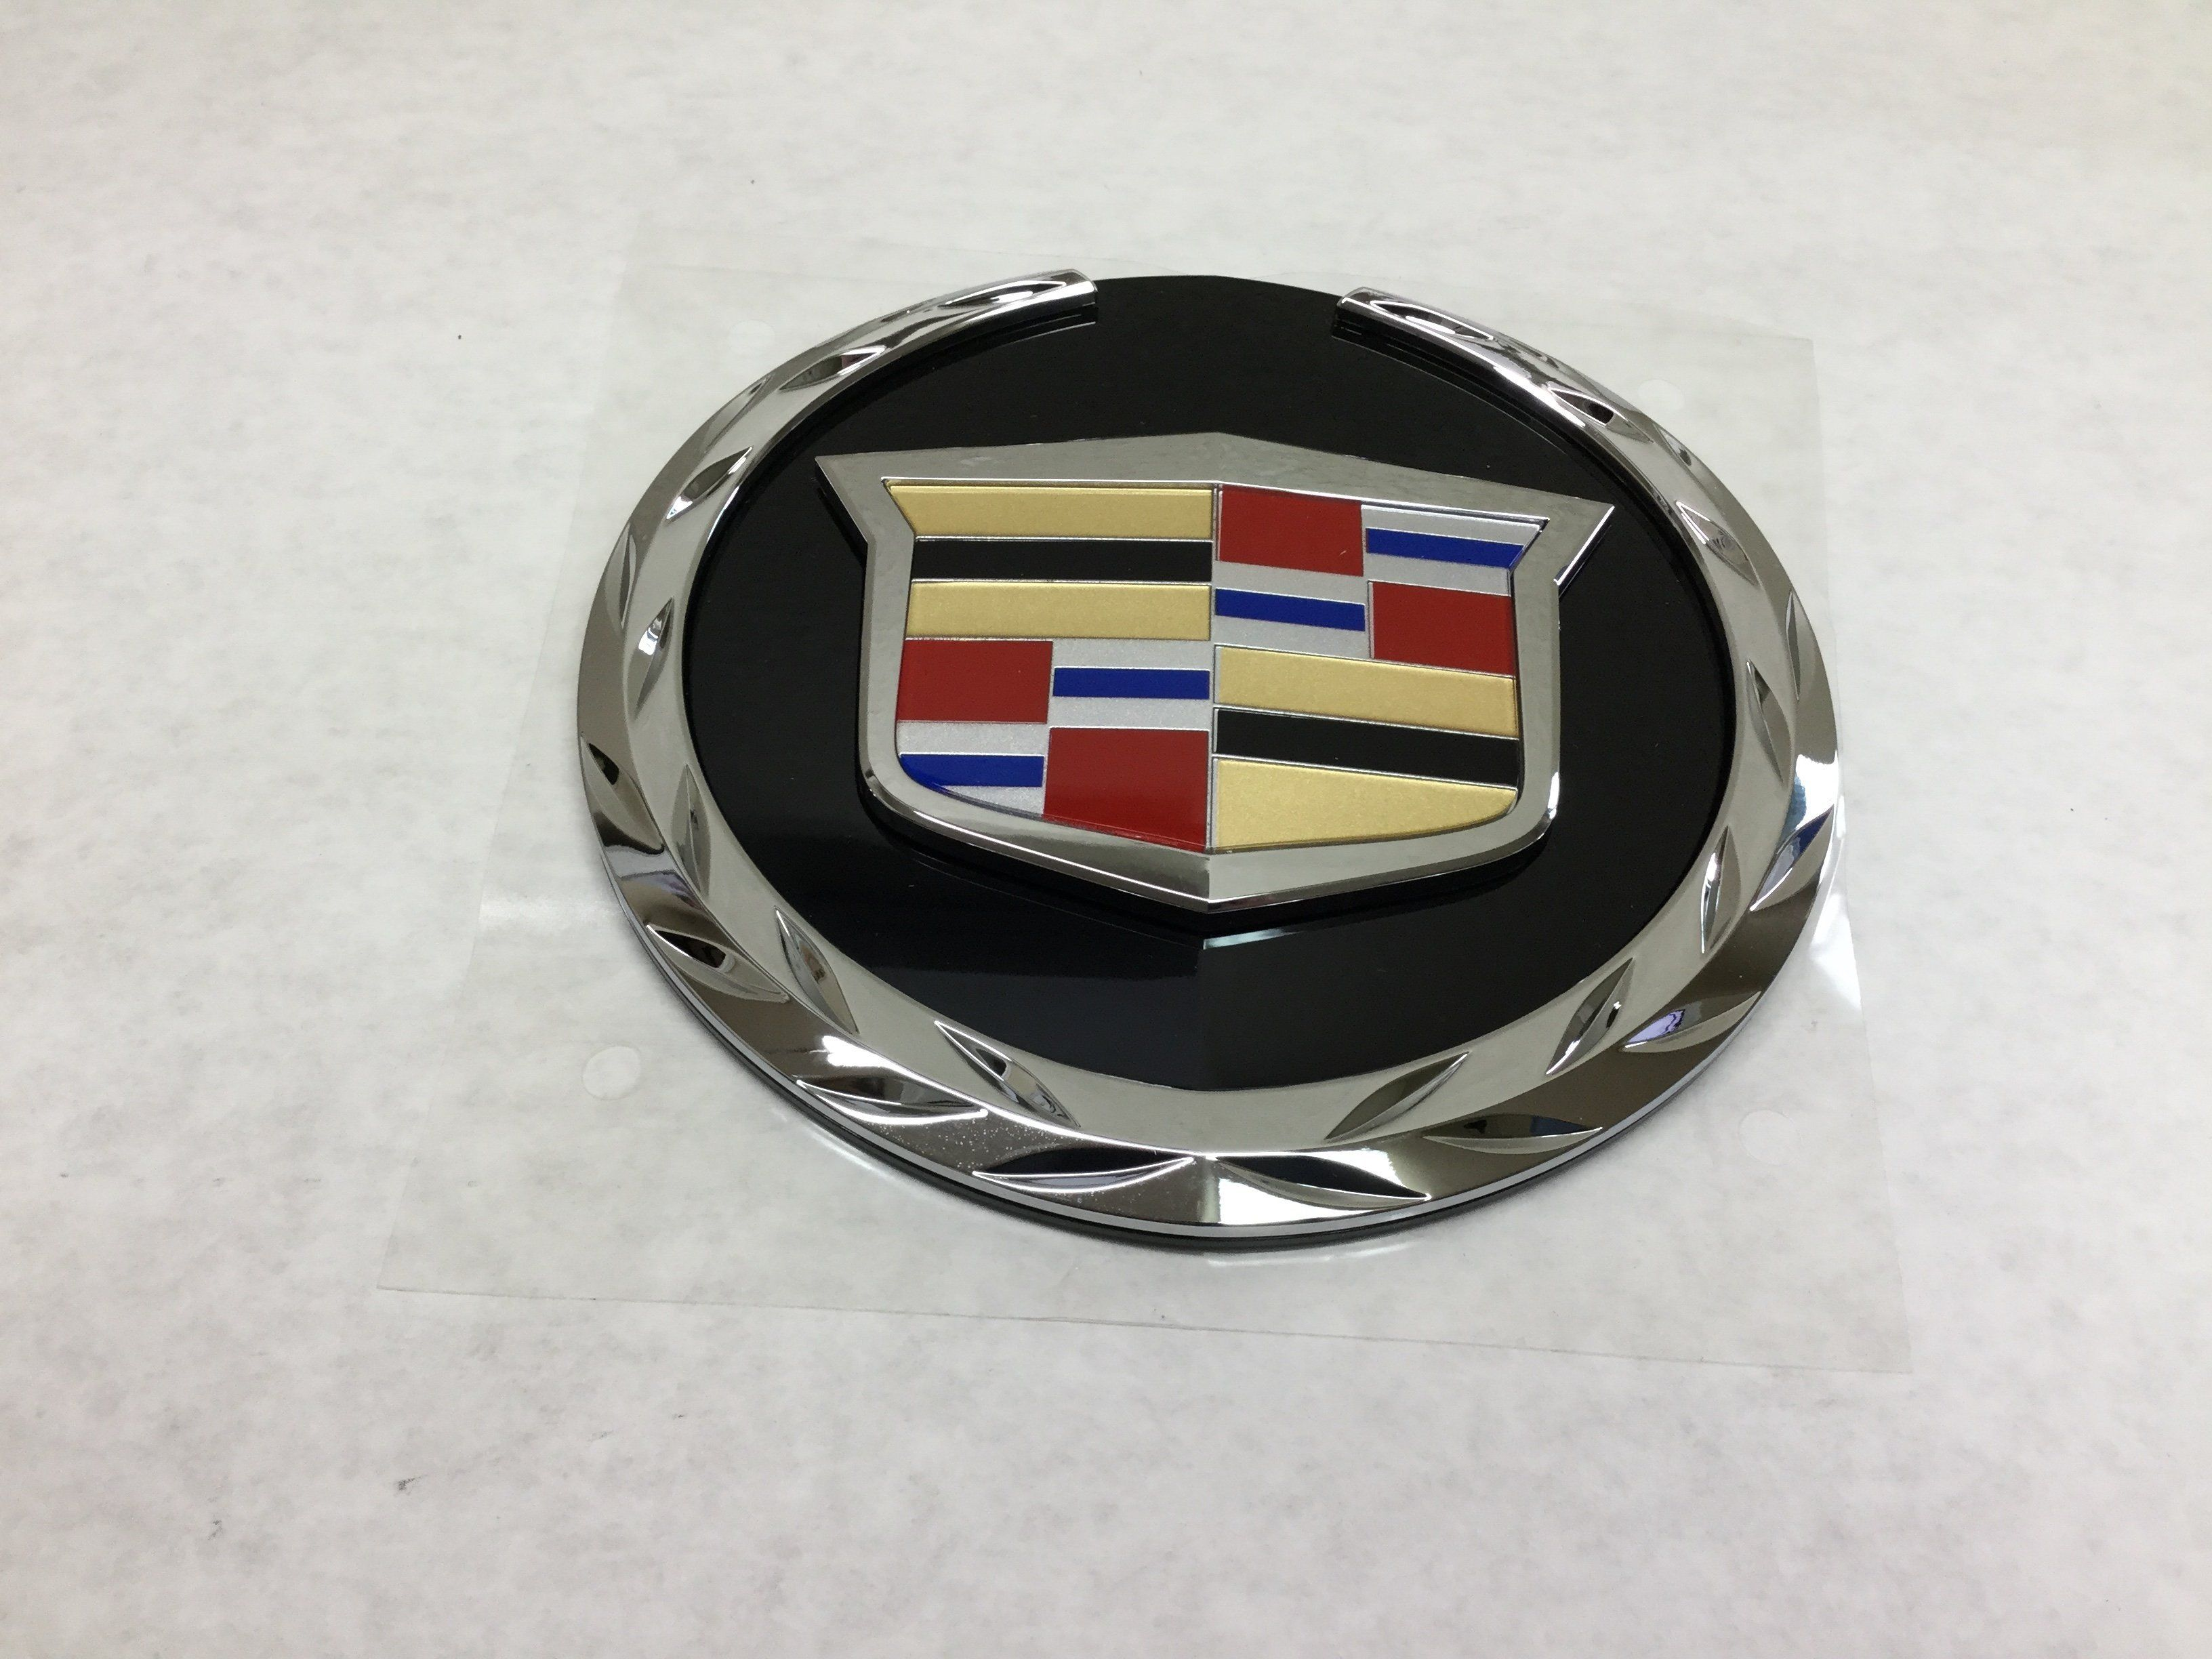 New 2007 2014 Cadillac Escalade Front Grille Crest And Wreath